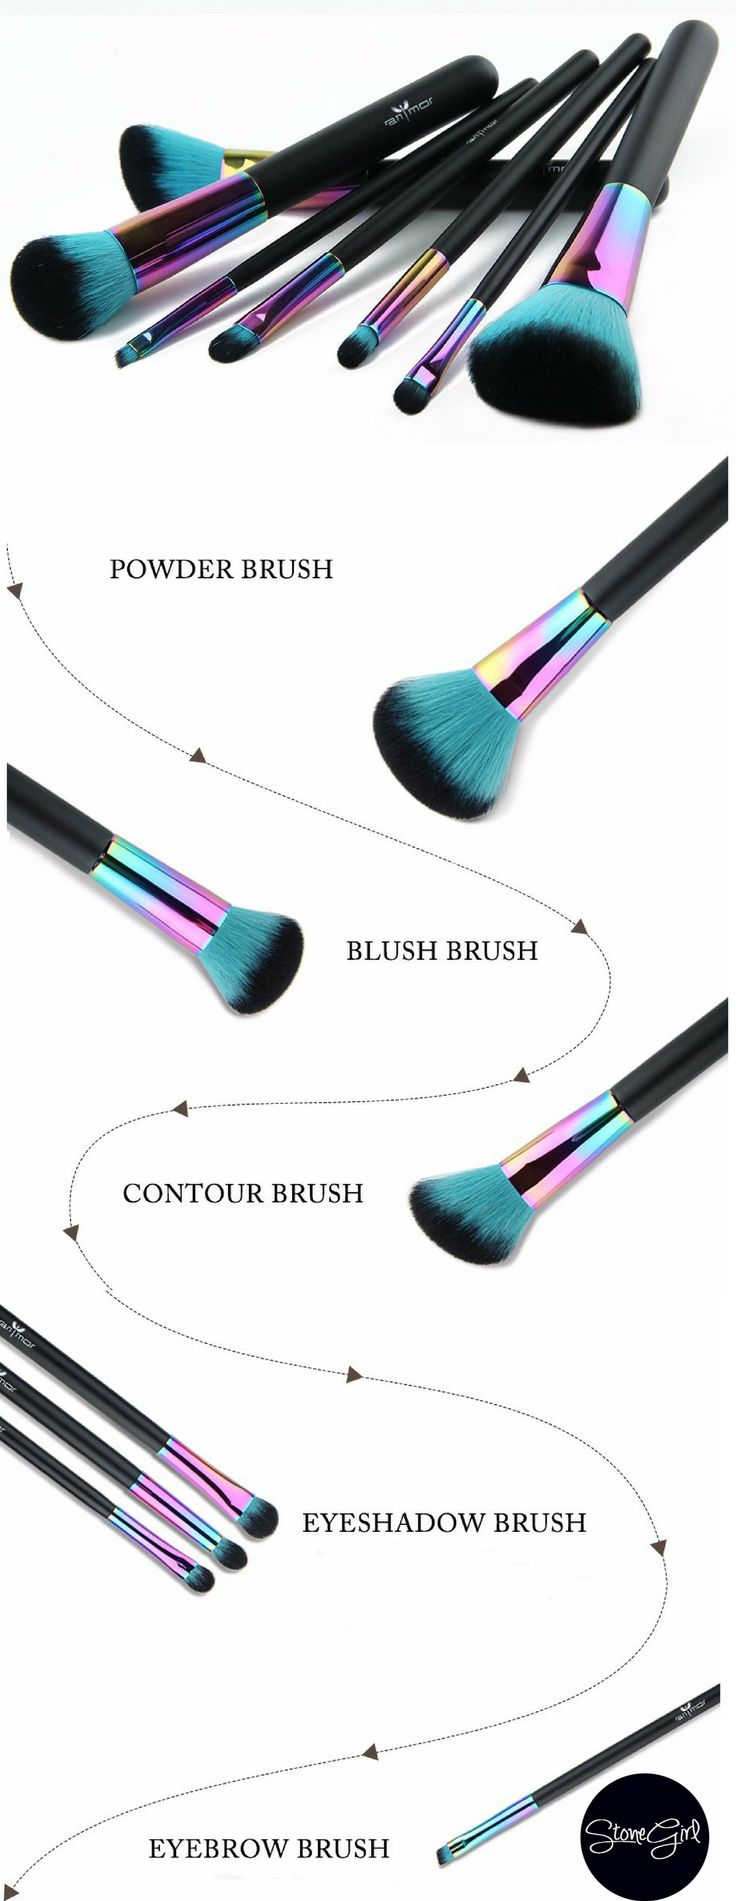 Product Highlights: - Stunning 7 Piece makeup brush set - Every brush you need for blending, contouring & highlighting - Our brushes are perfect for powders, liquids & minerals - High quality syntheti